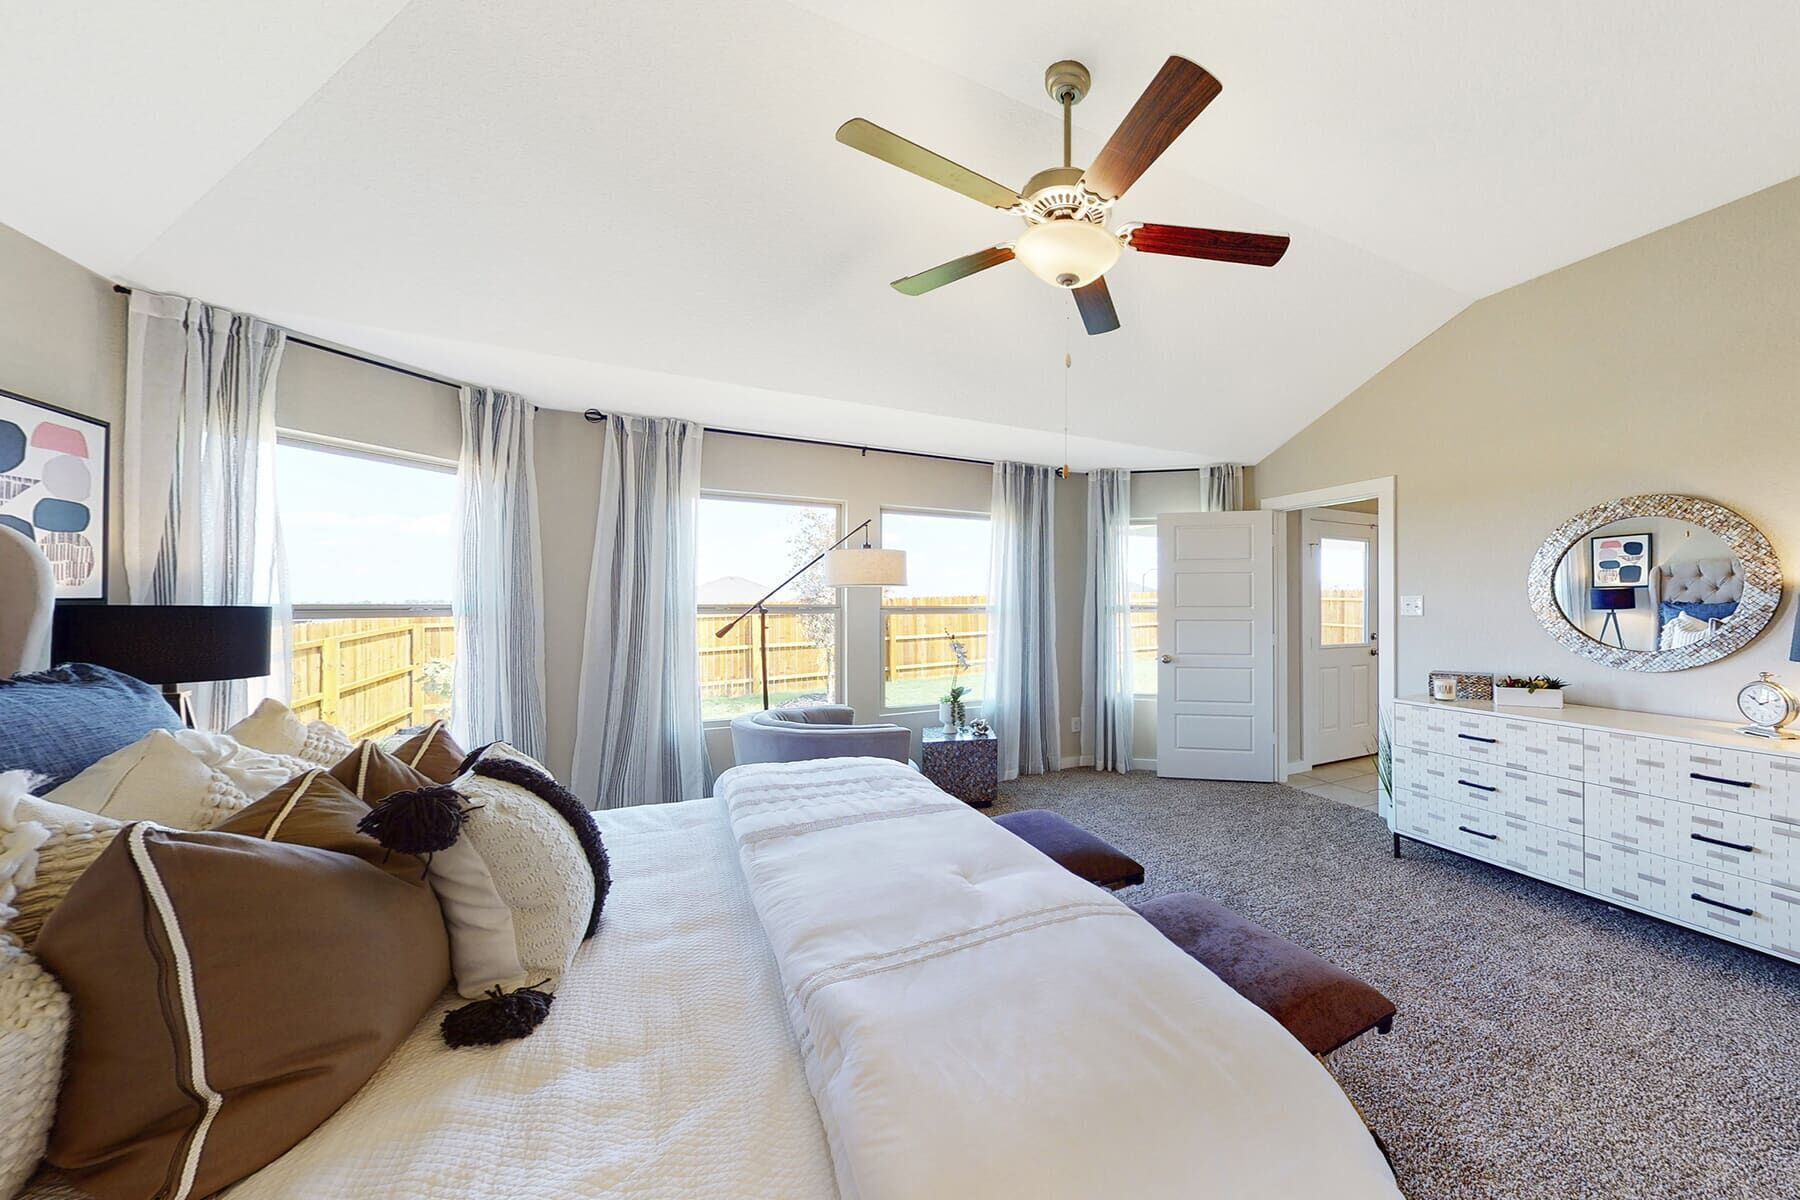 Bedroom featured in the Eastland By M/I Homes in San Antonio, TX